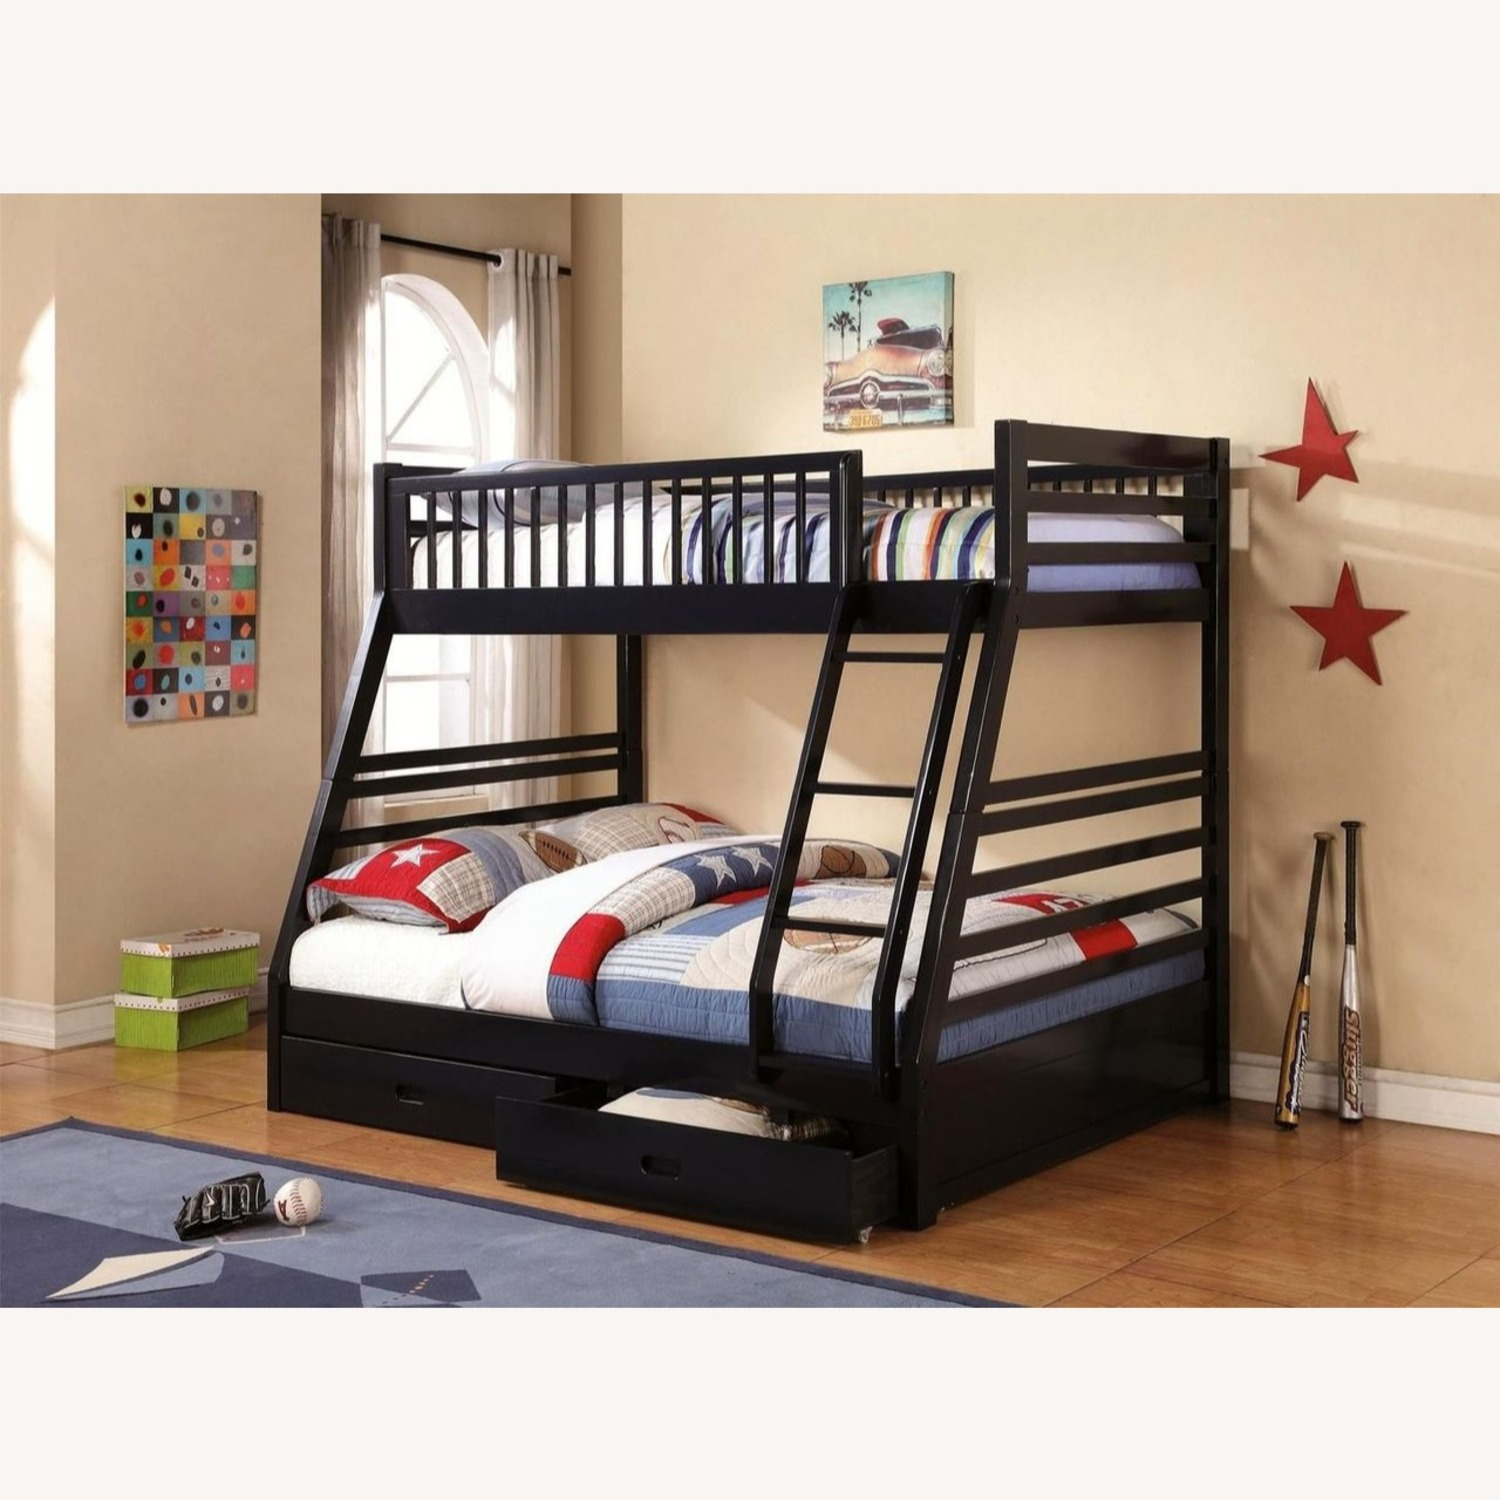 Twin Over Full Bunk Bed In Sleek Navy Blue Finish - image-2